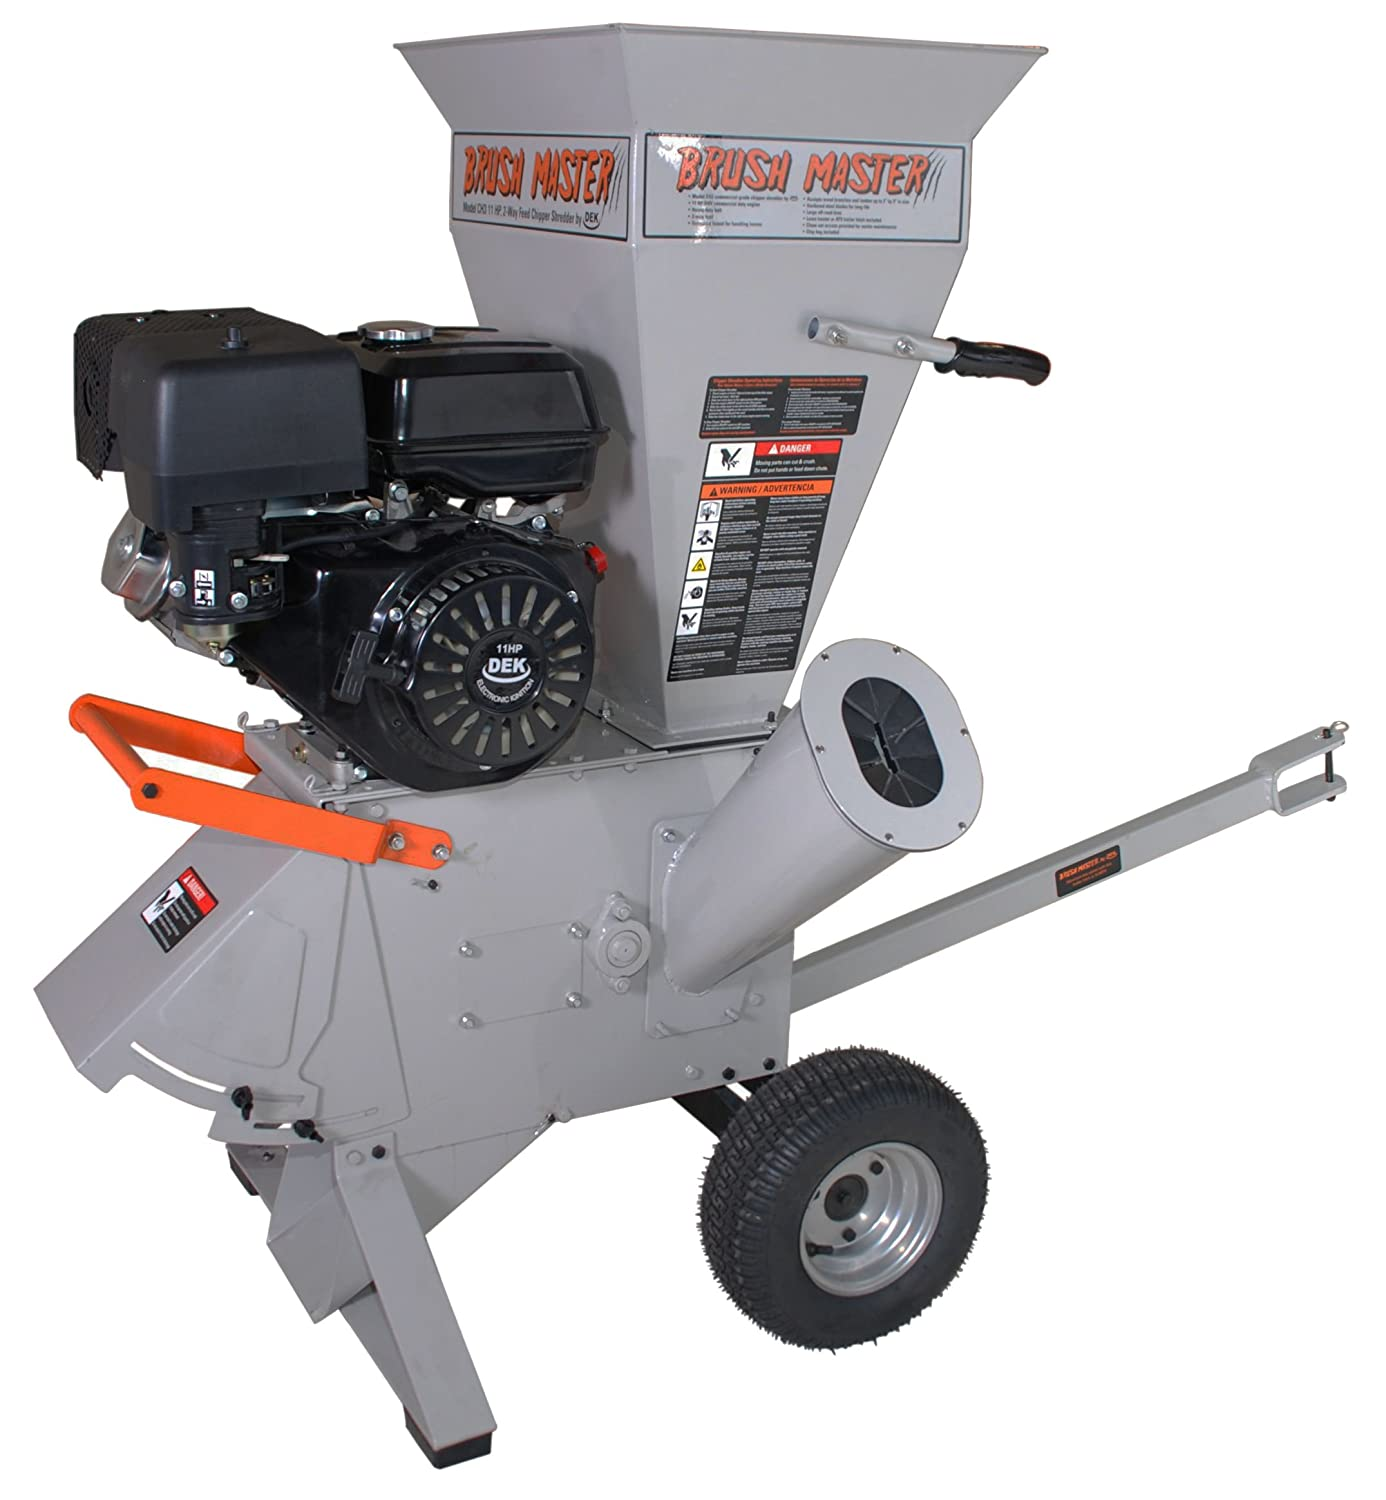 3 point wood chipper